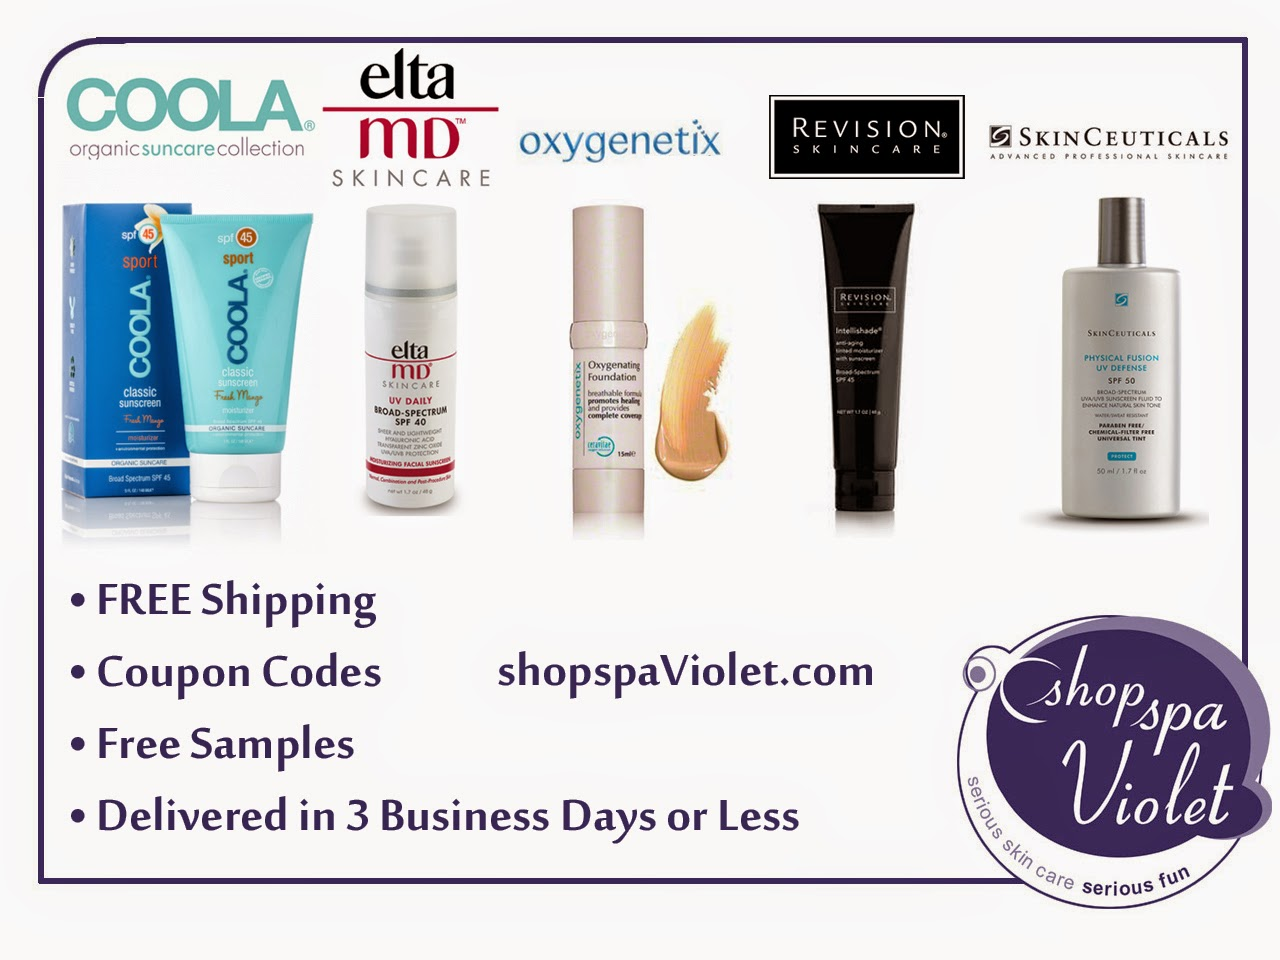 Quality Sunscreen with Coupon Codes